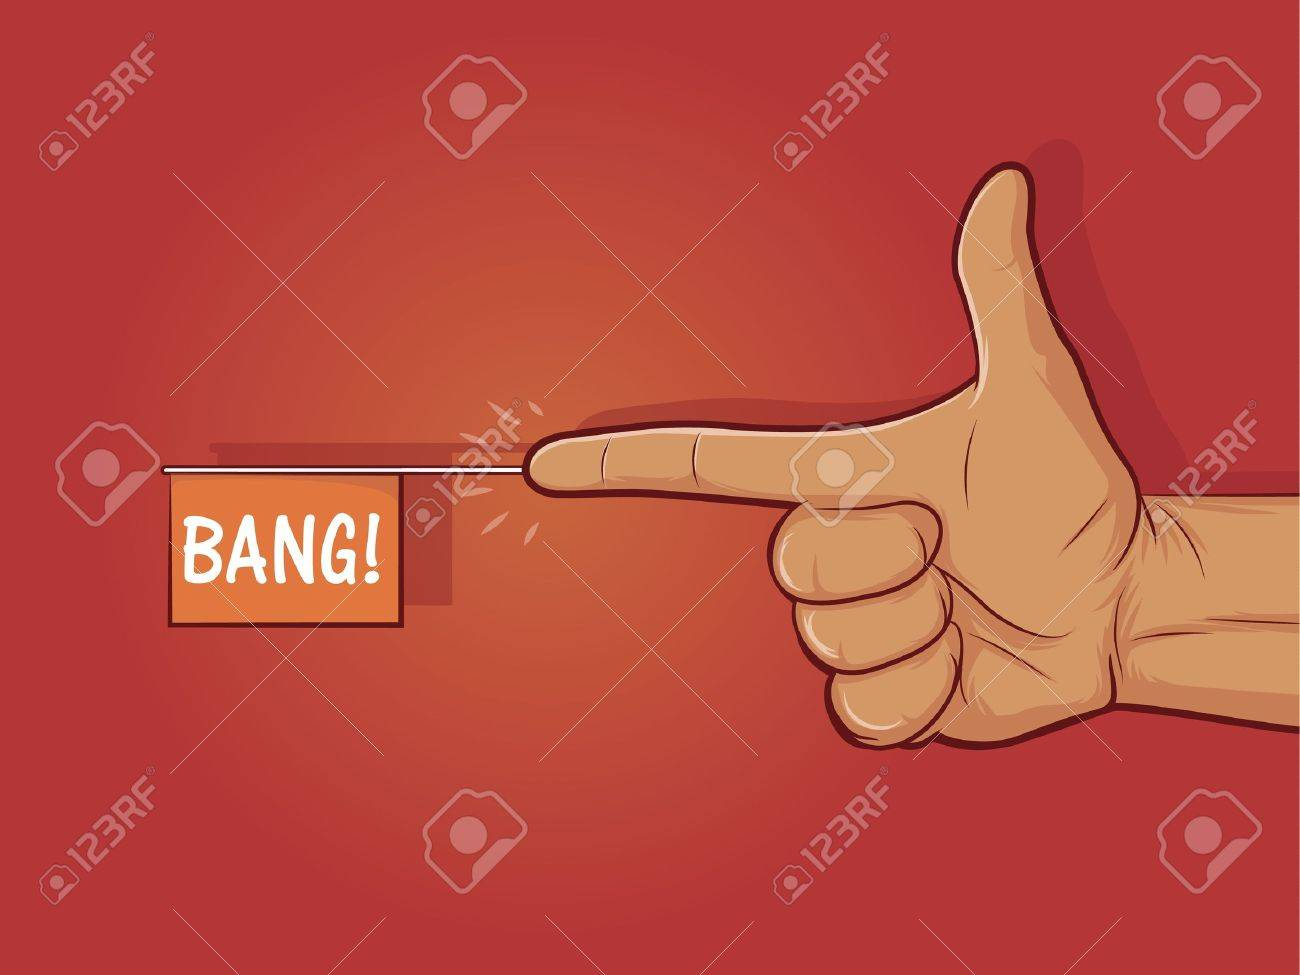 Illustration of a gun hand gesture with Stock Vector - 19487558